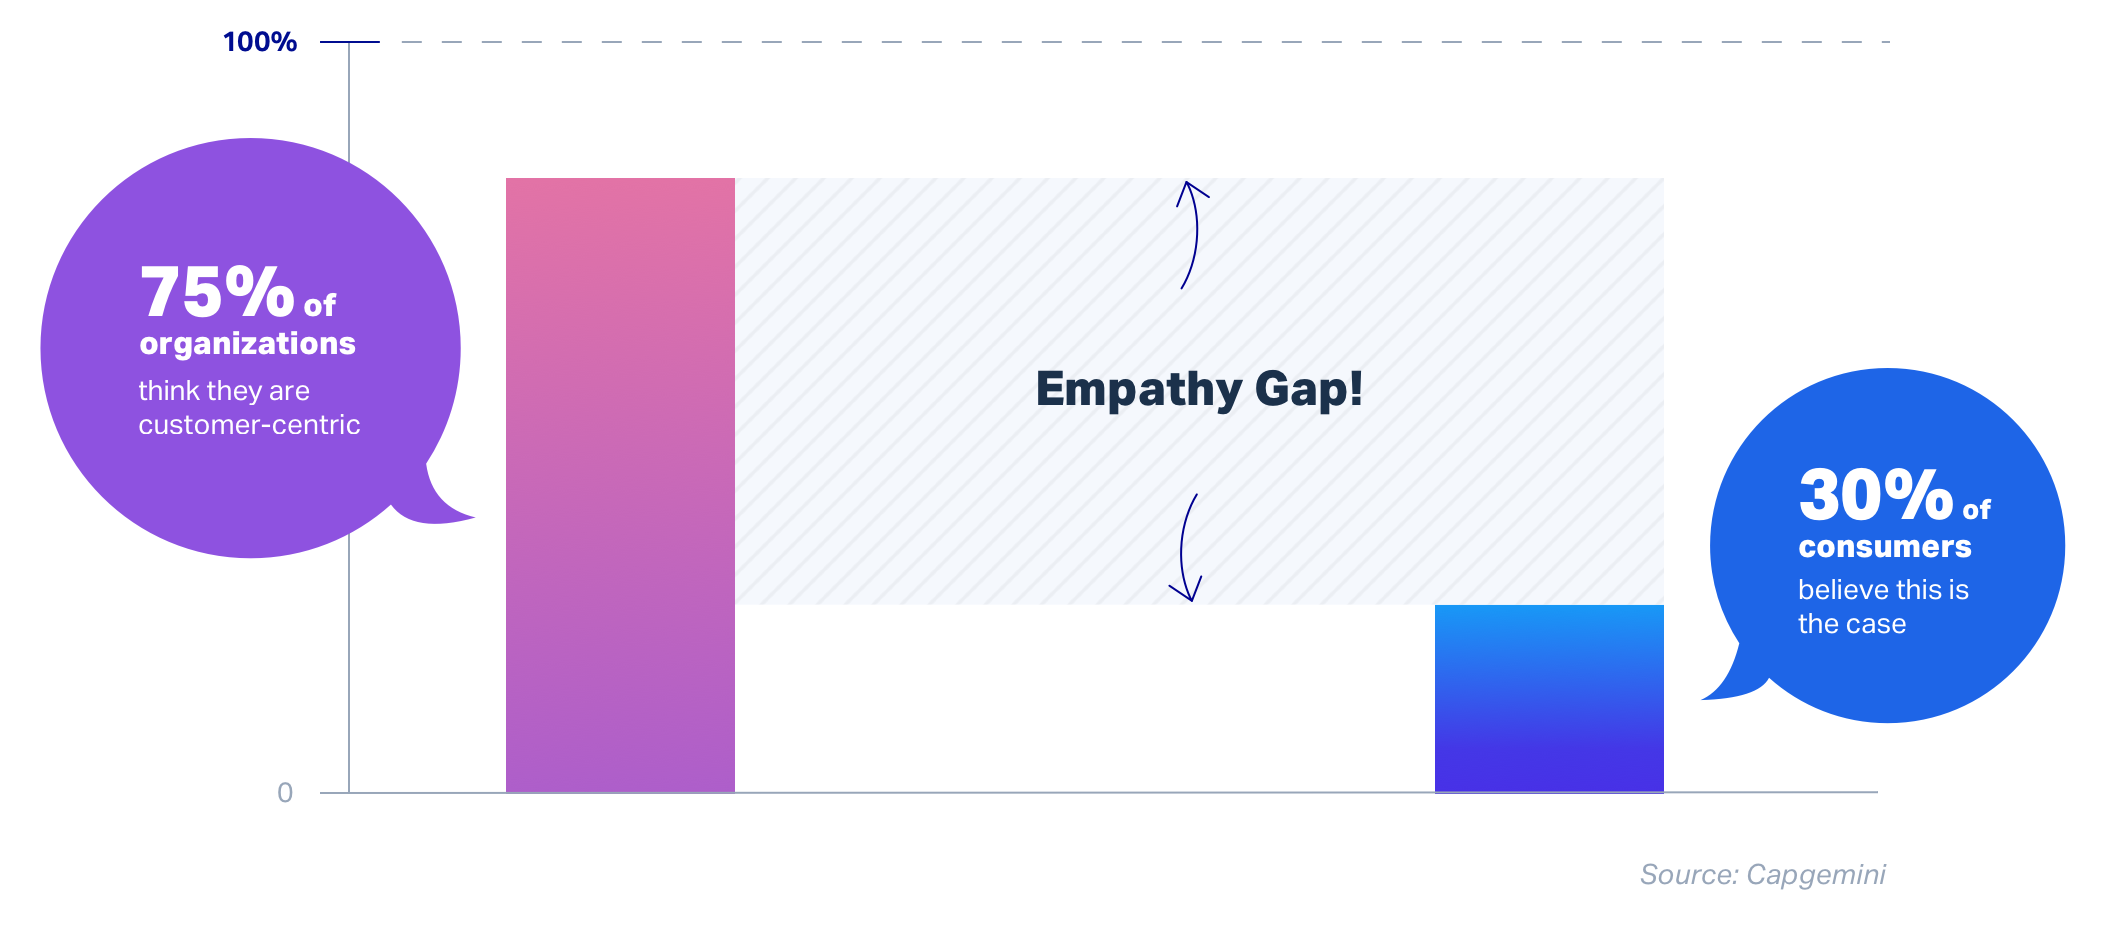 Empathy gap illustration